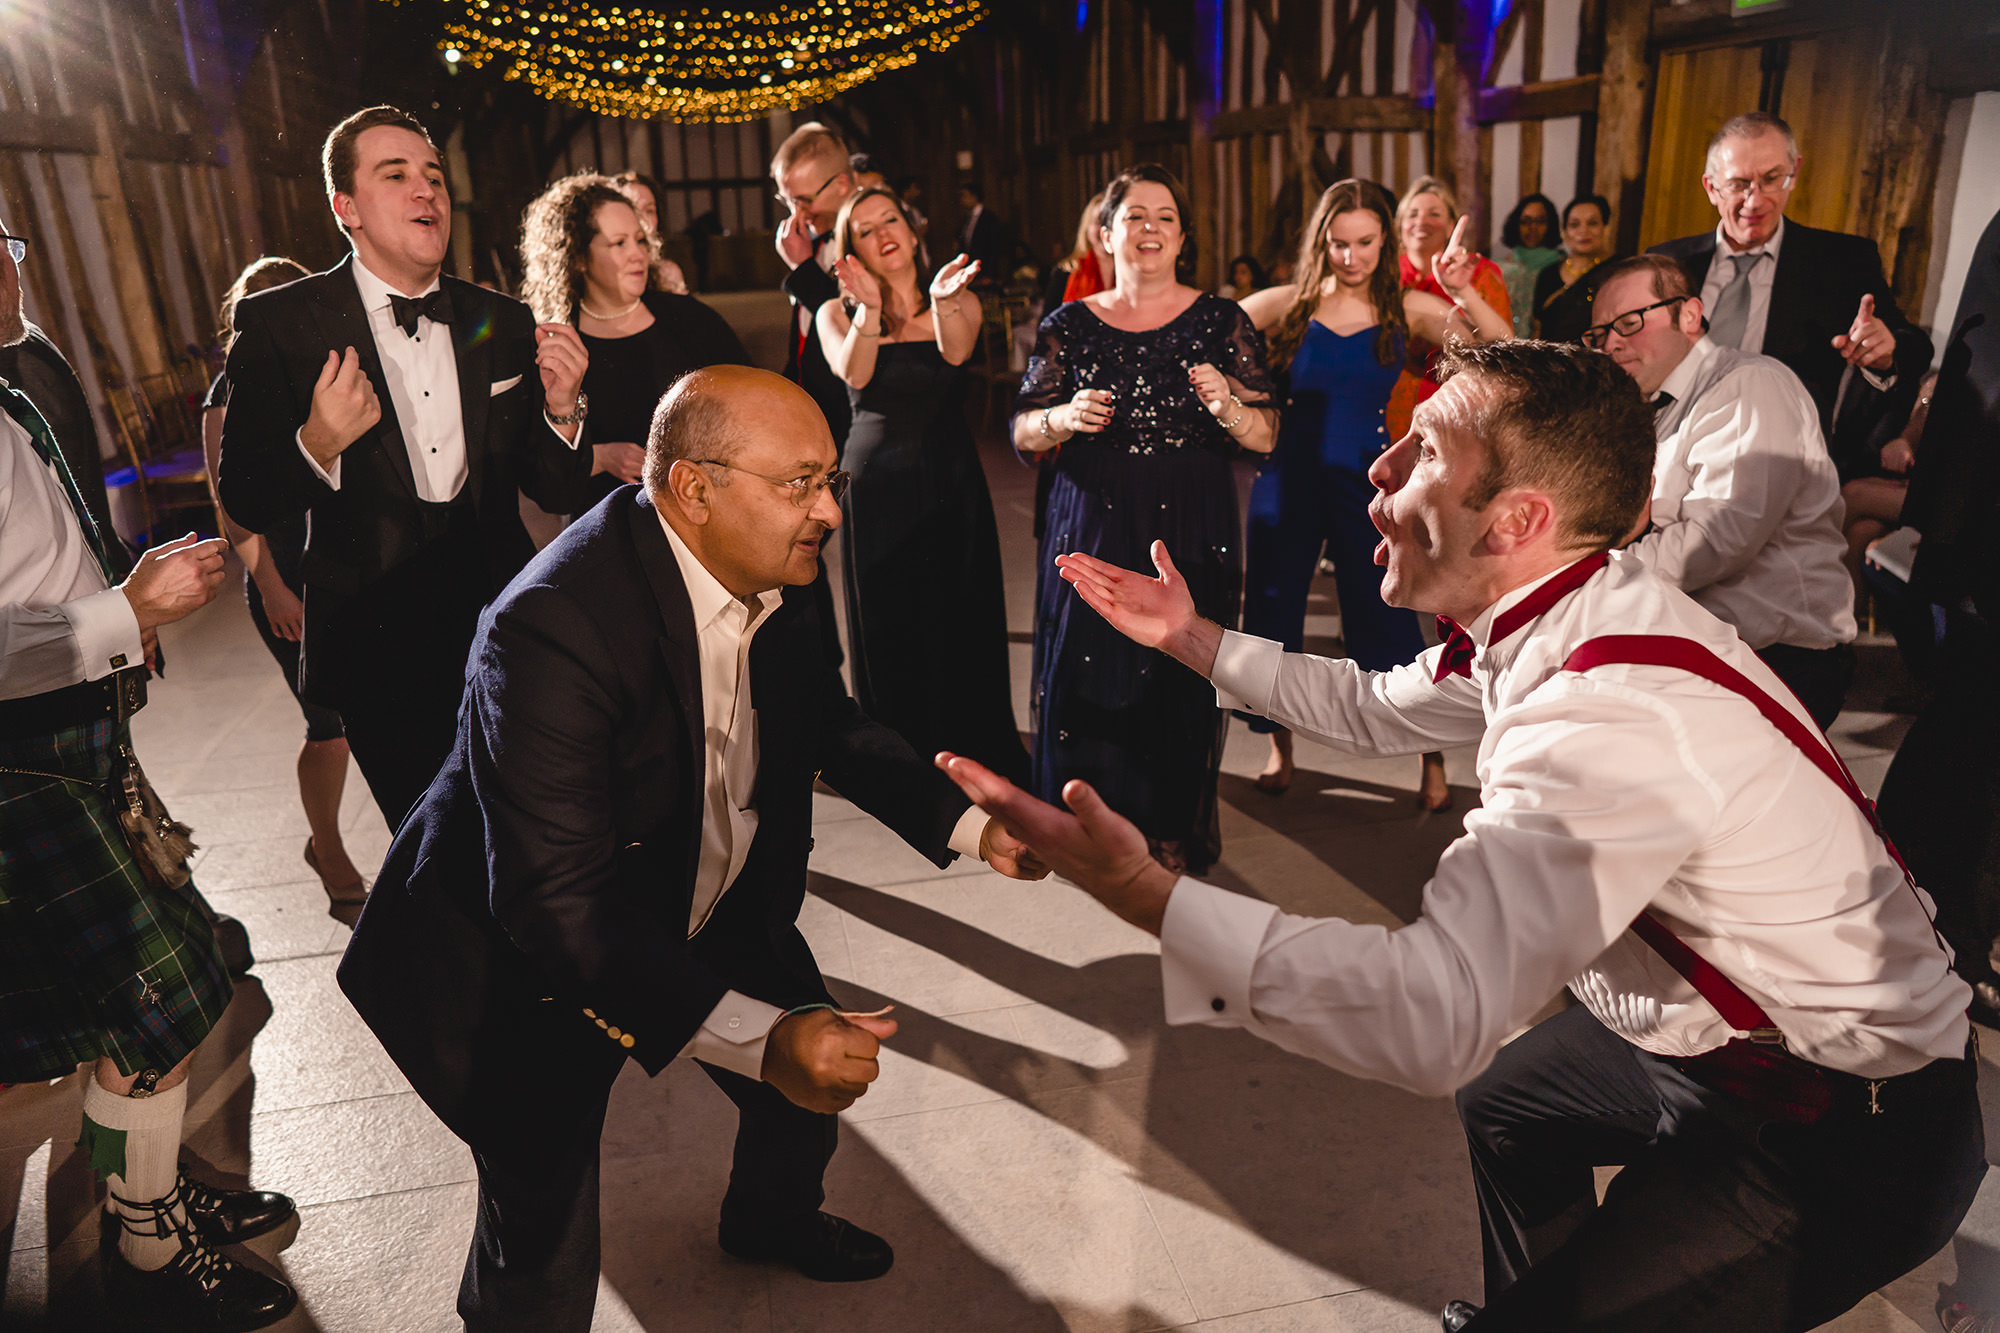 groom and father dance off at wedding reception